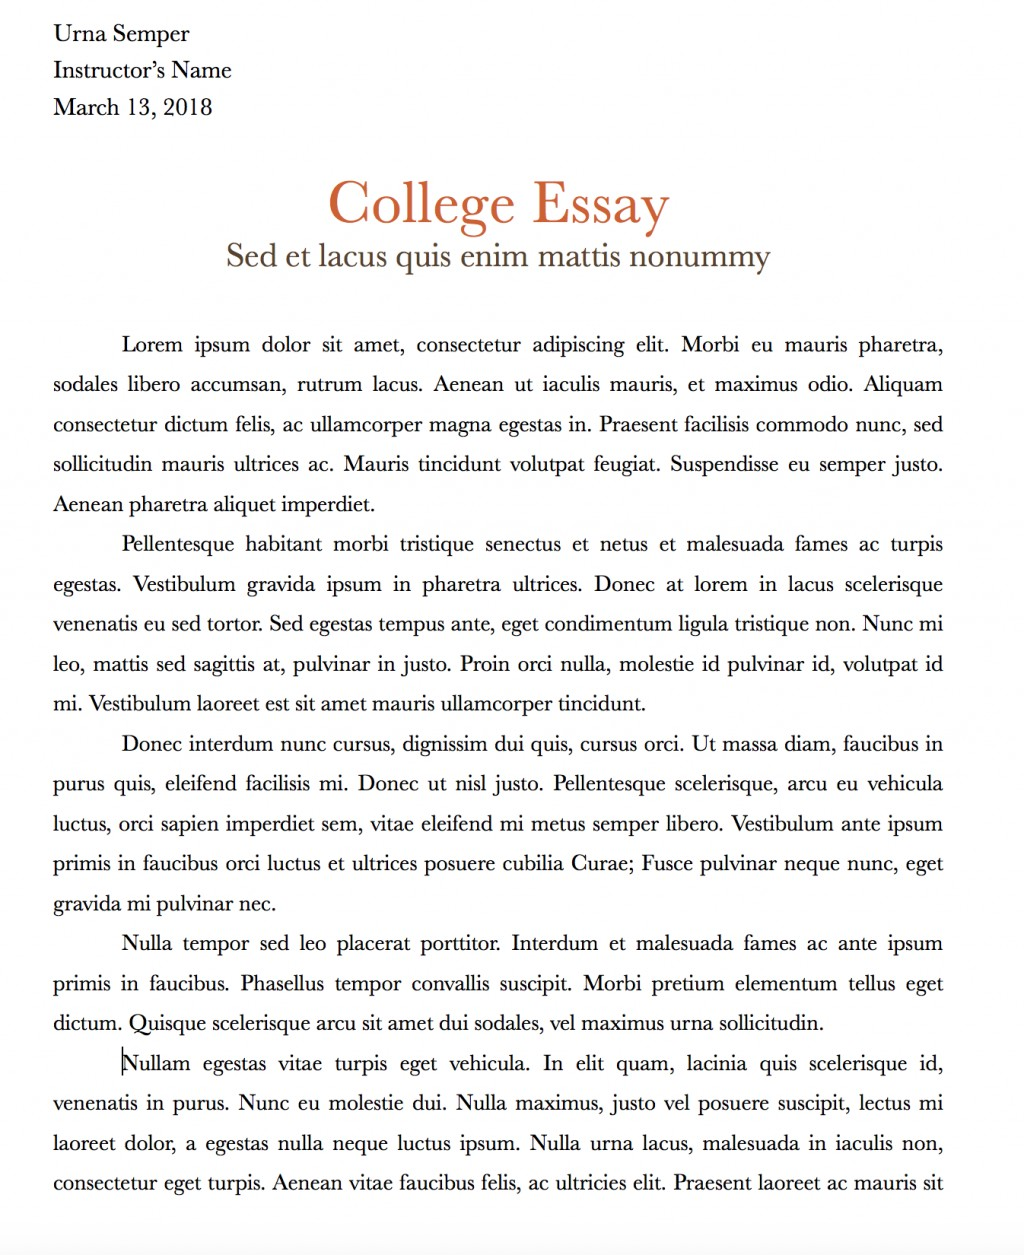 001 How An Essay Should Look Ctwrvkoshcimzkxyhyl8 College With Paragraphs Unique What A Persuasive Like Does Introduction In Argumentative Large